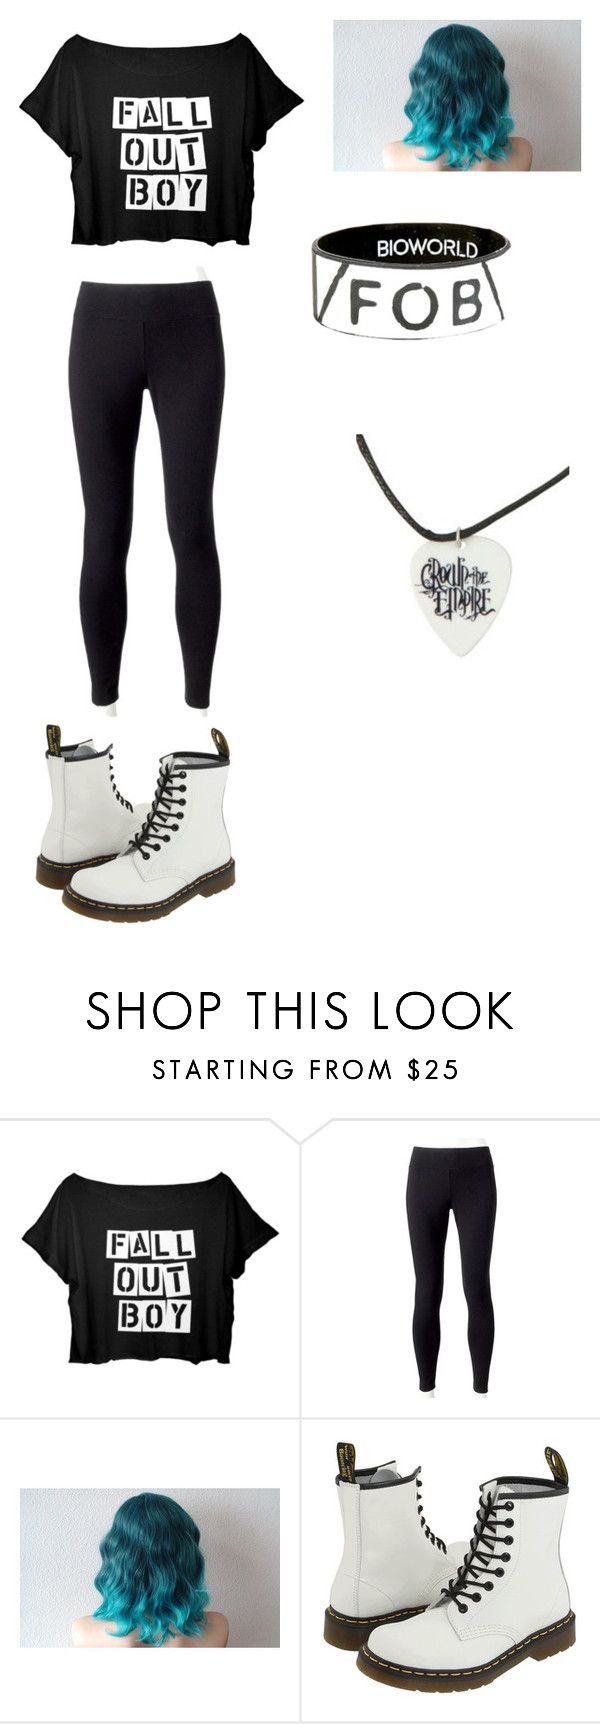 """Fall Out Boy"" by meagannicolebarrett on Polyvore featuring Jockey and Dr. Martens"